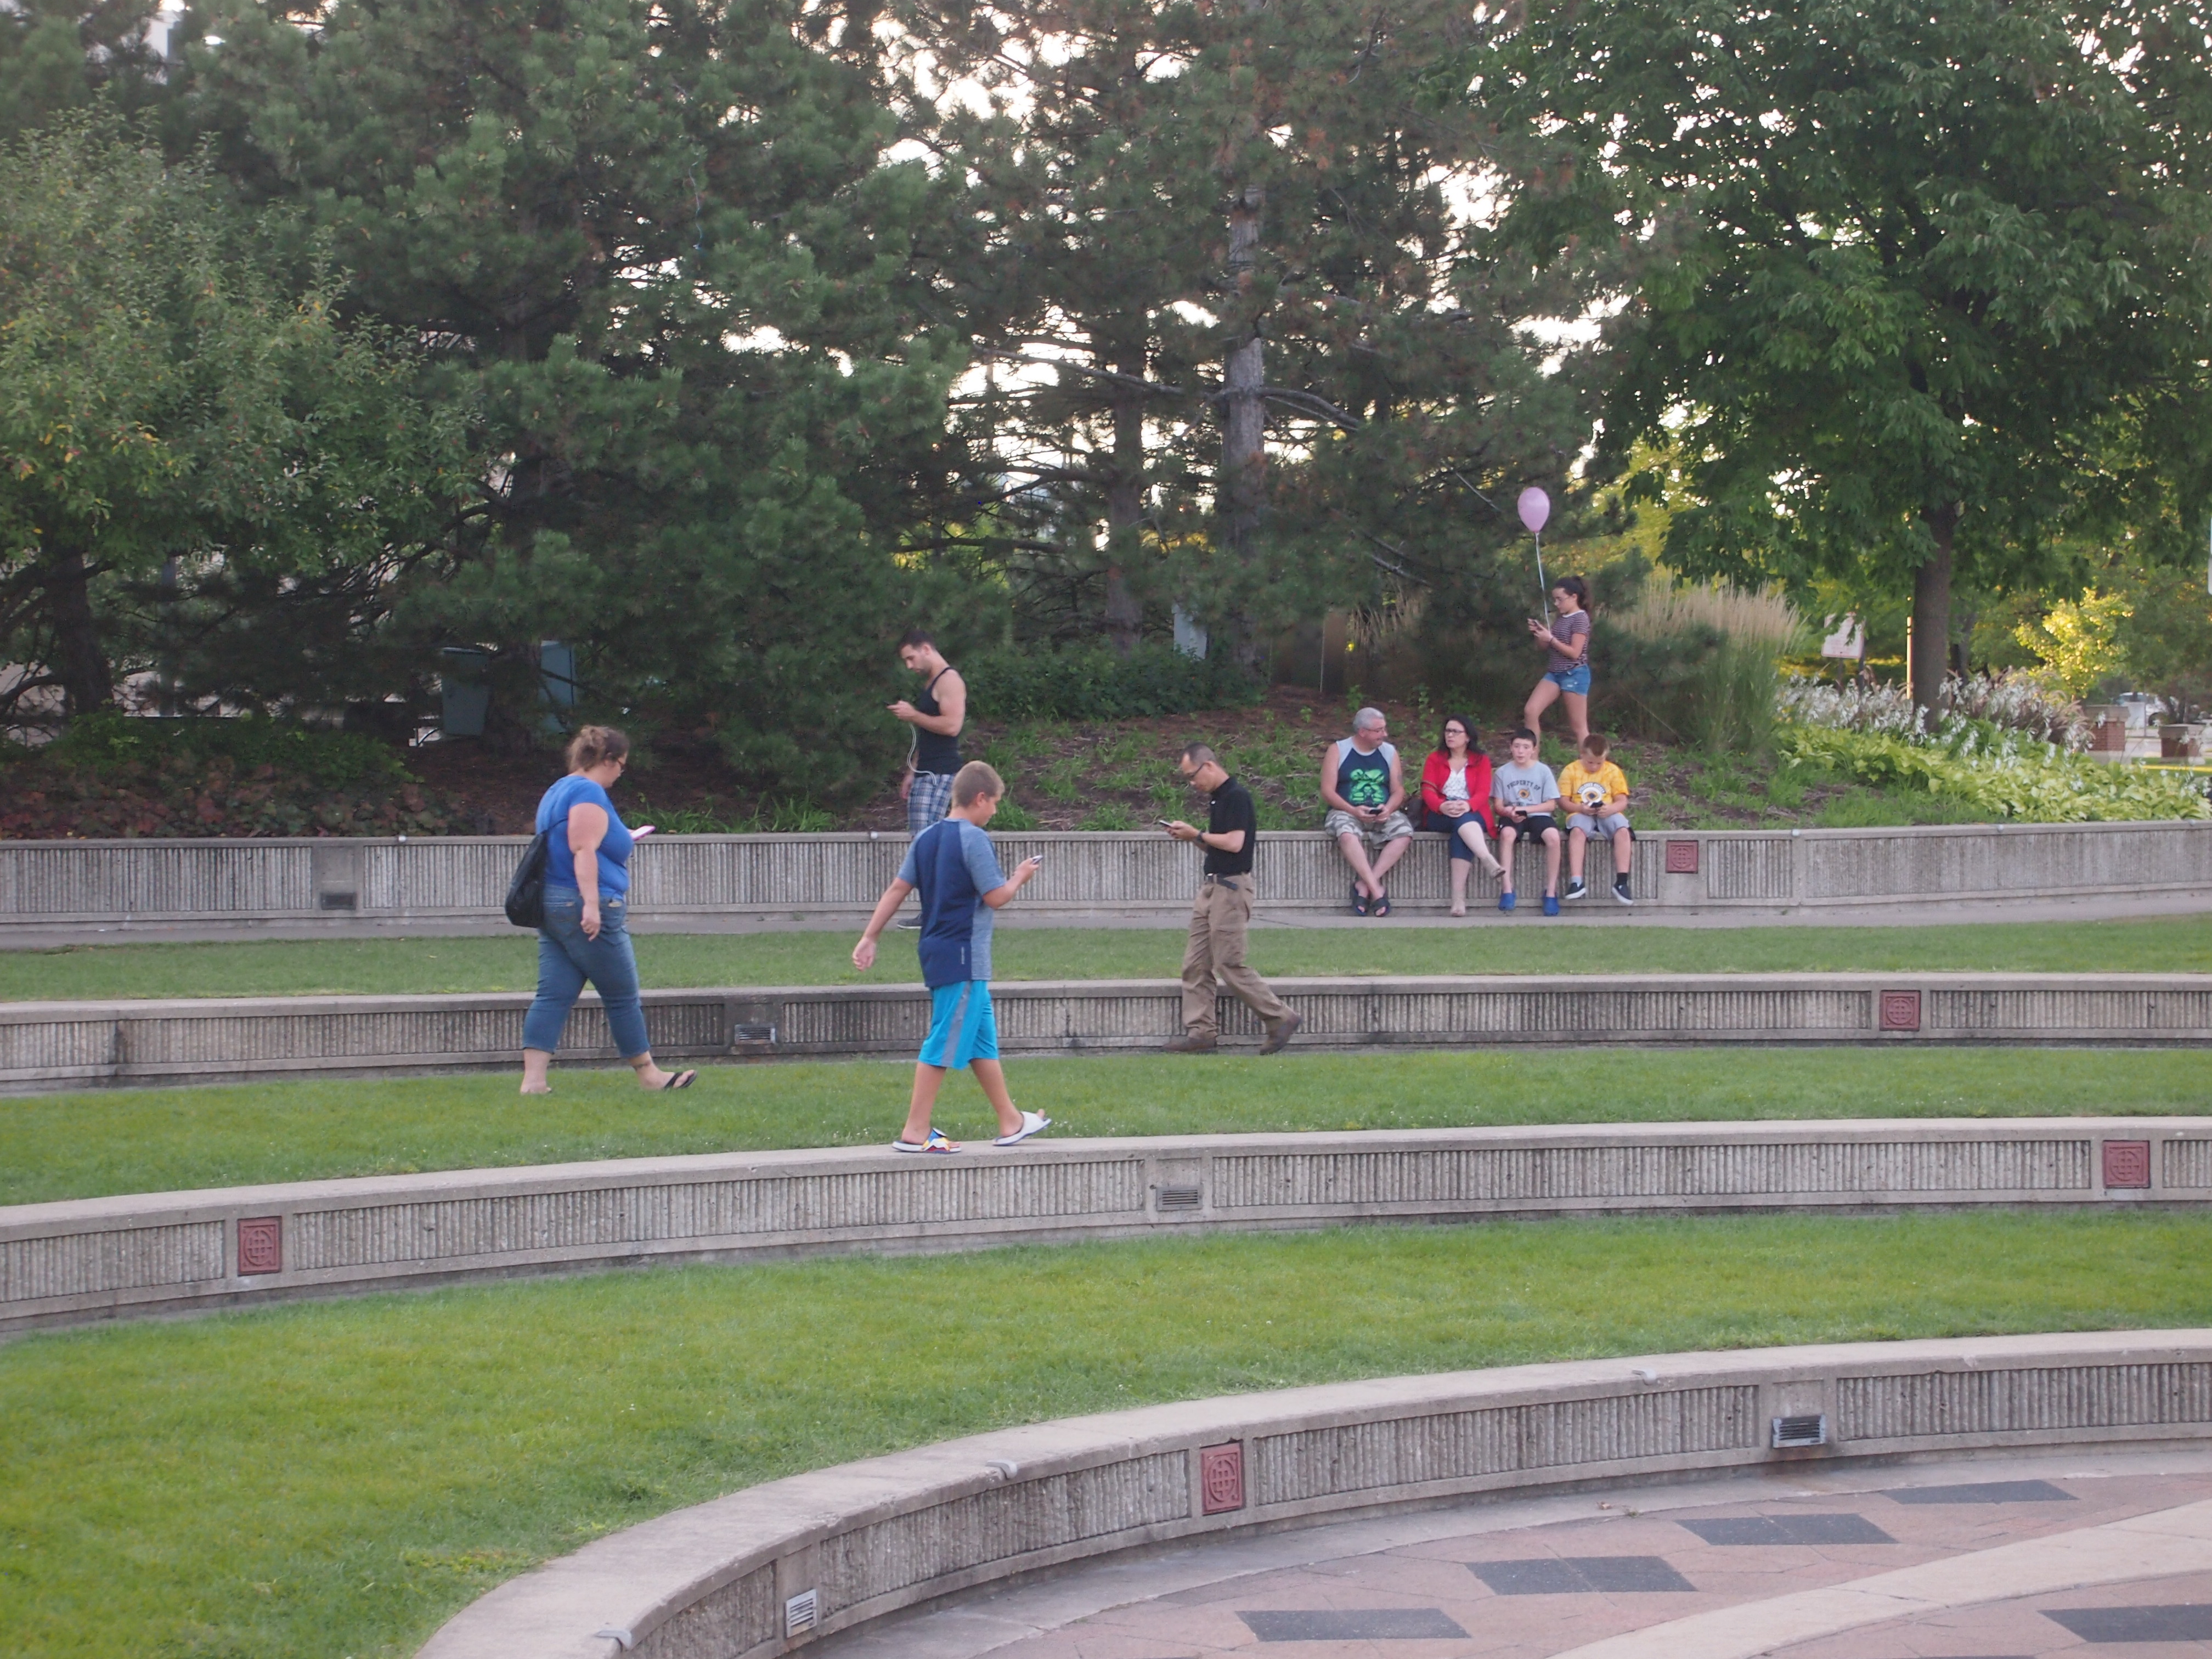 Playing Pokemon Go at Schaumburg Town Square 2016